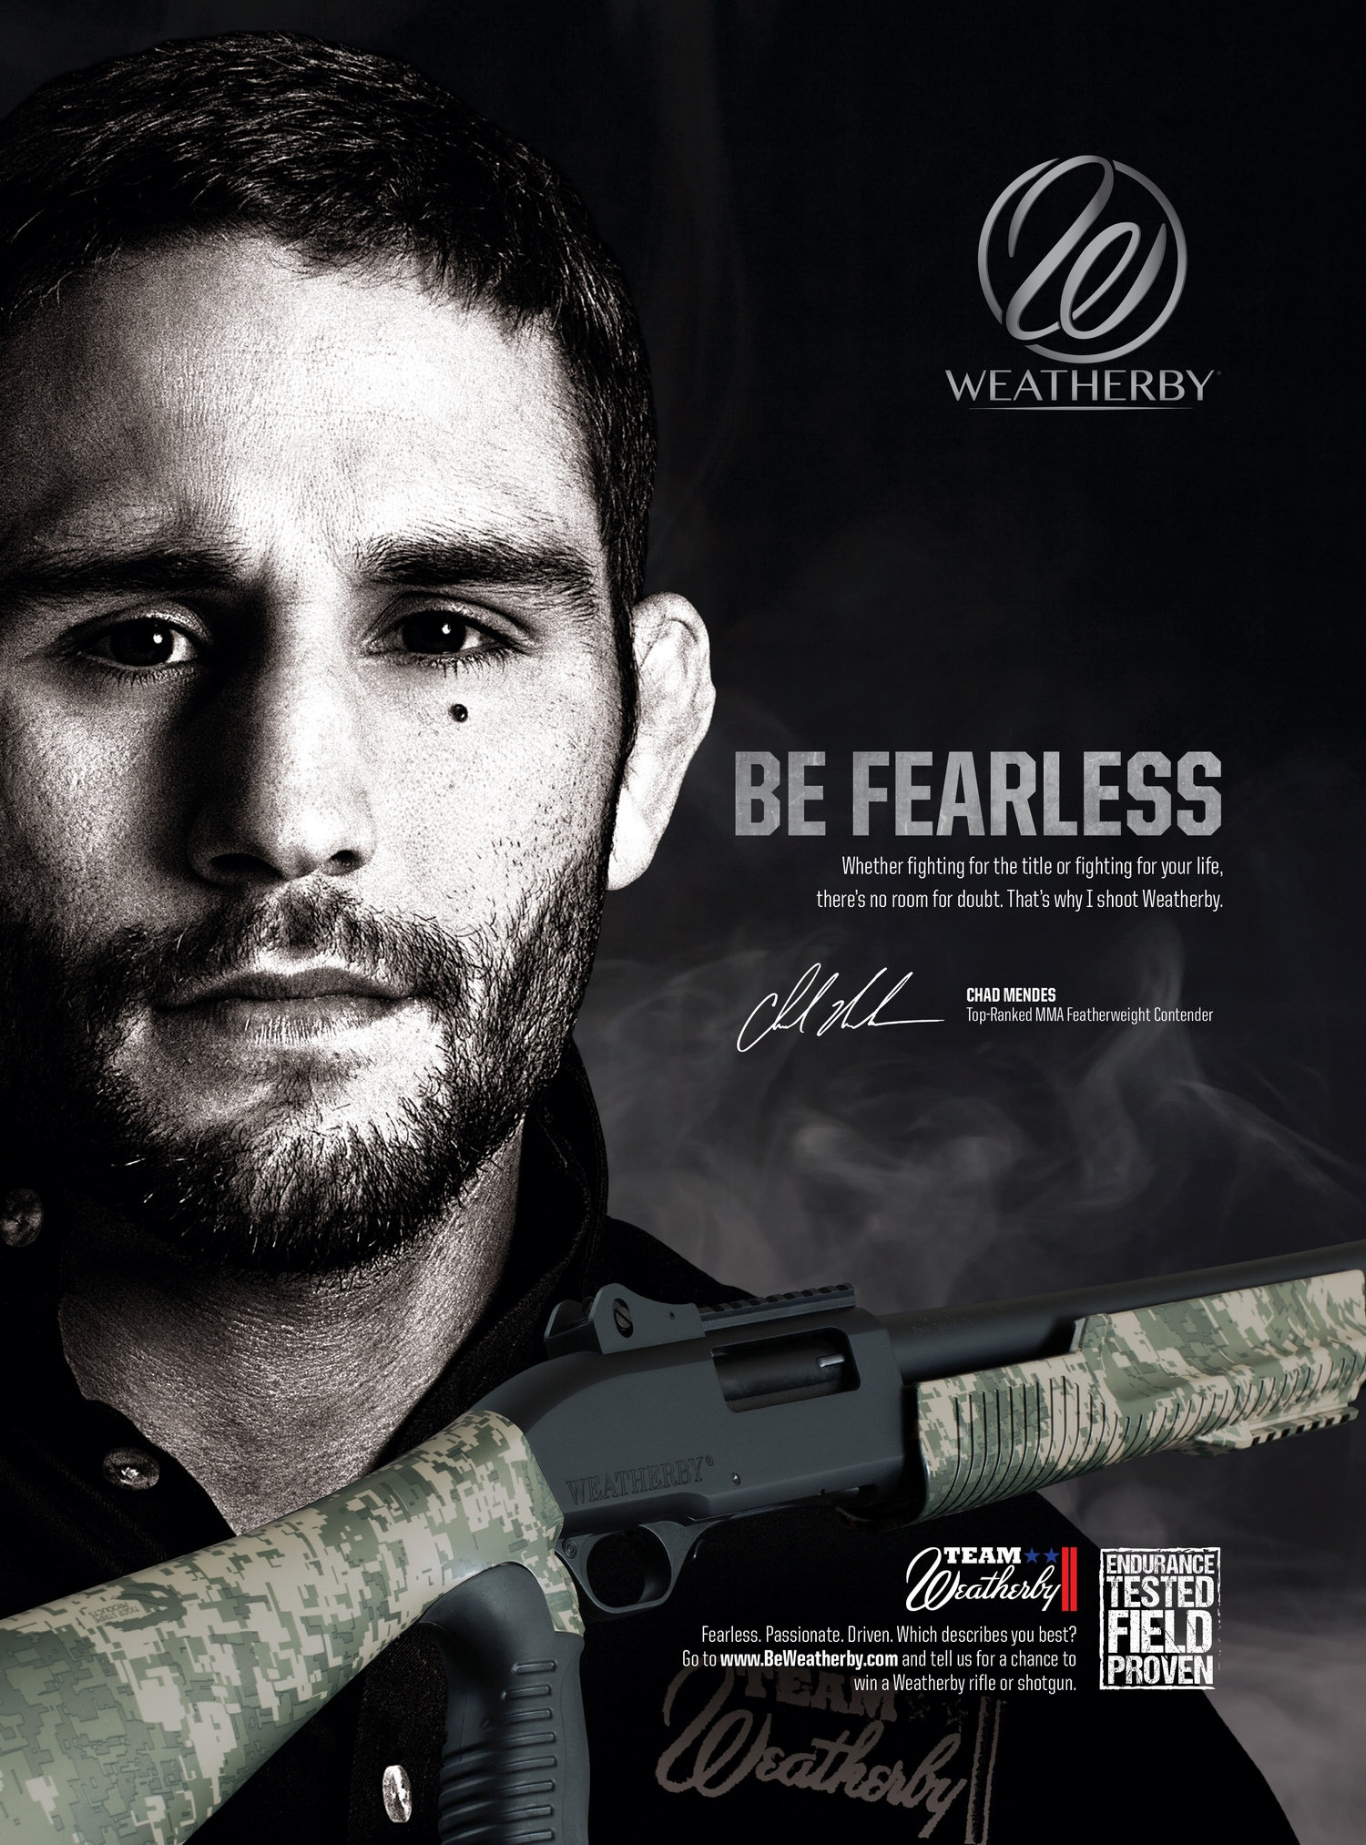 2016 Weatherby Ad Campaign